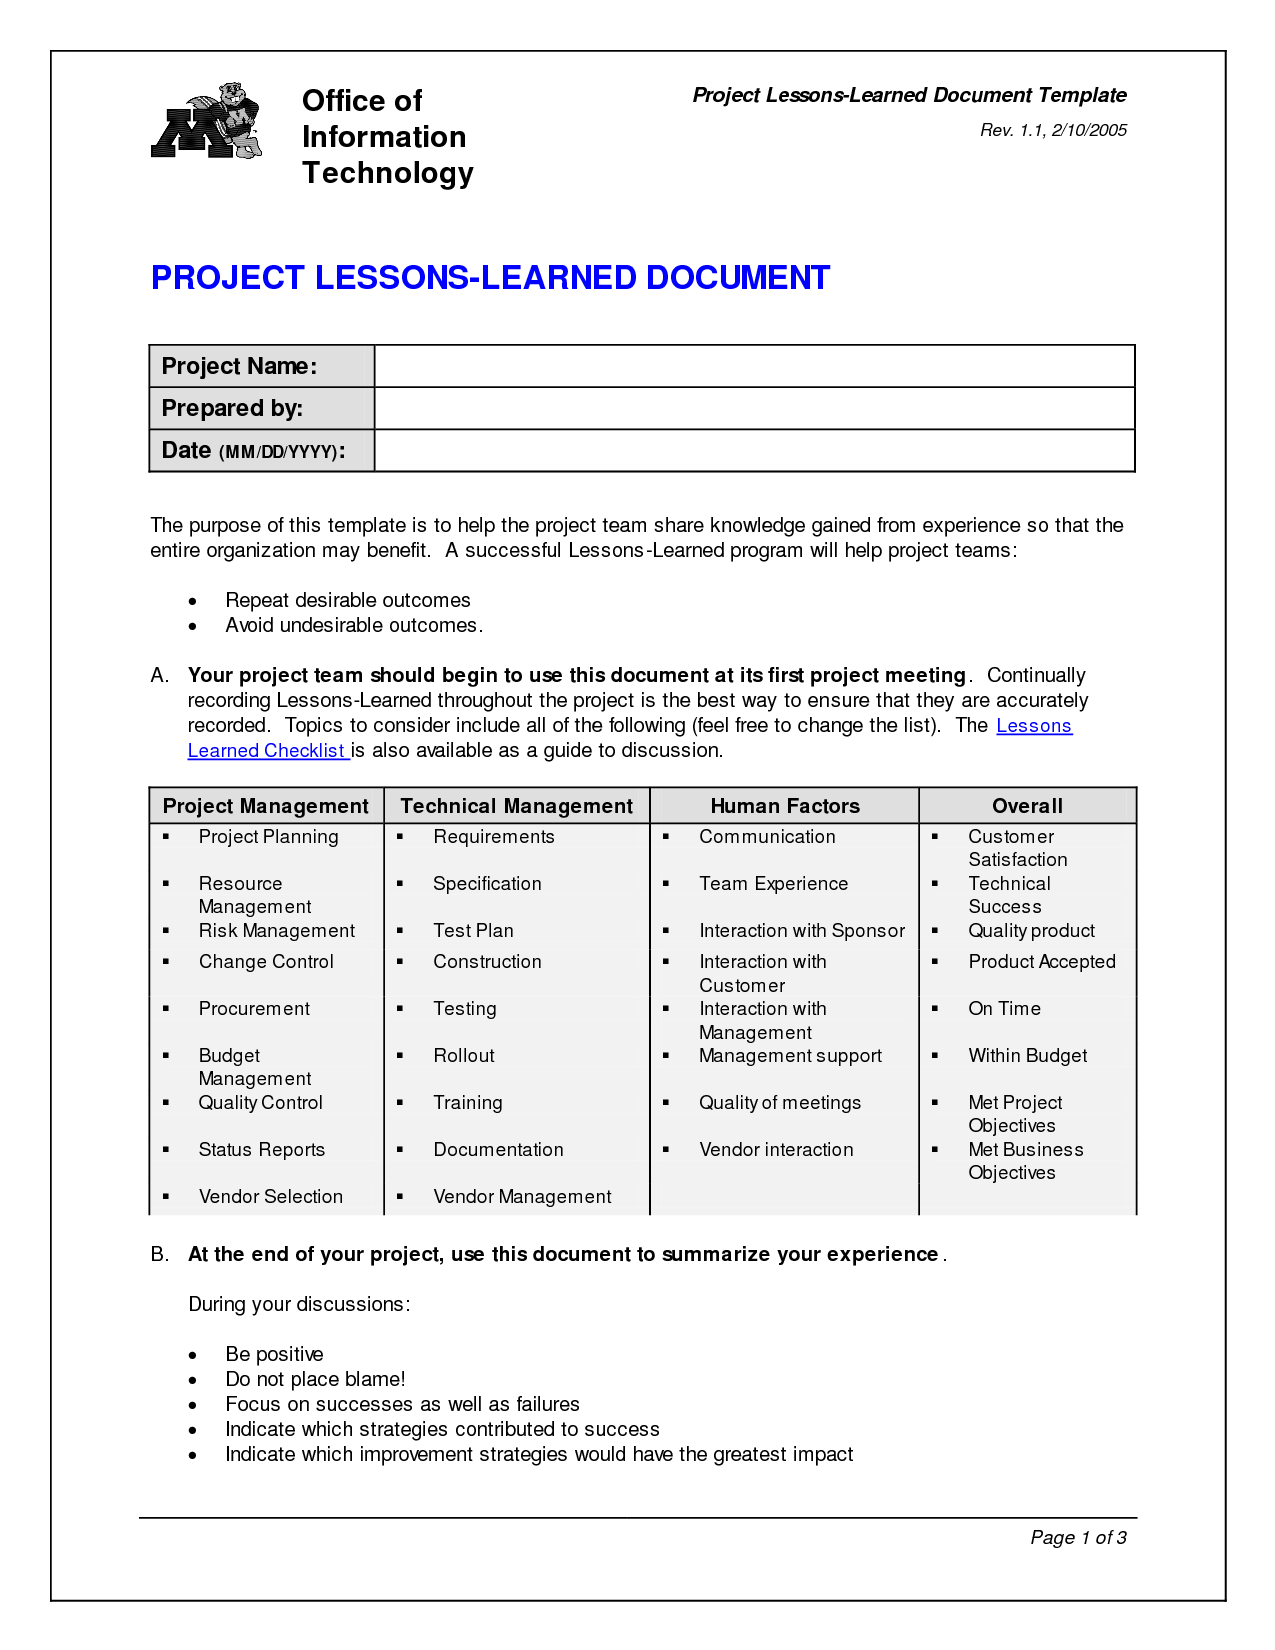 Project lessons learned quotes quotesgram for Project management lessons learnt template